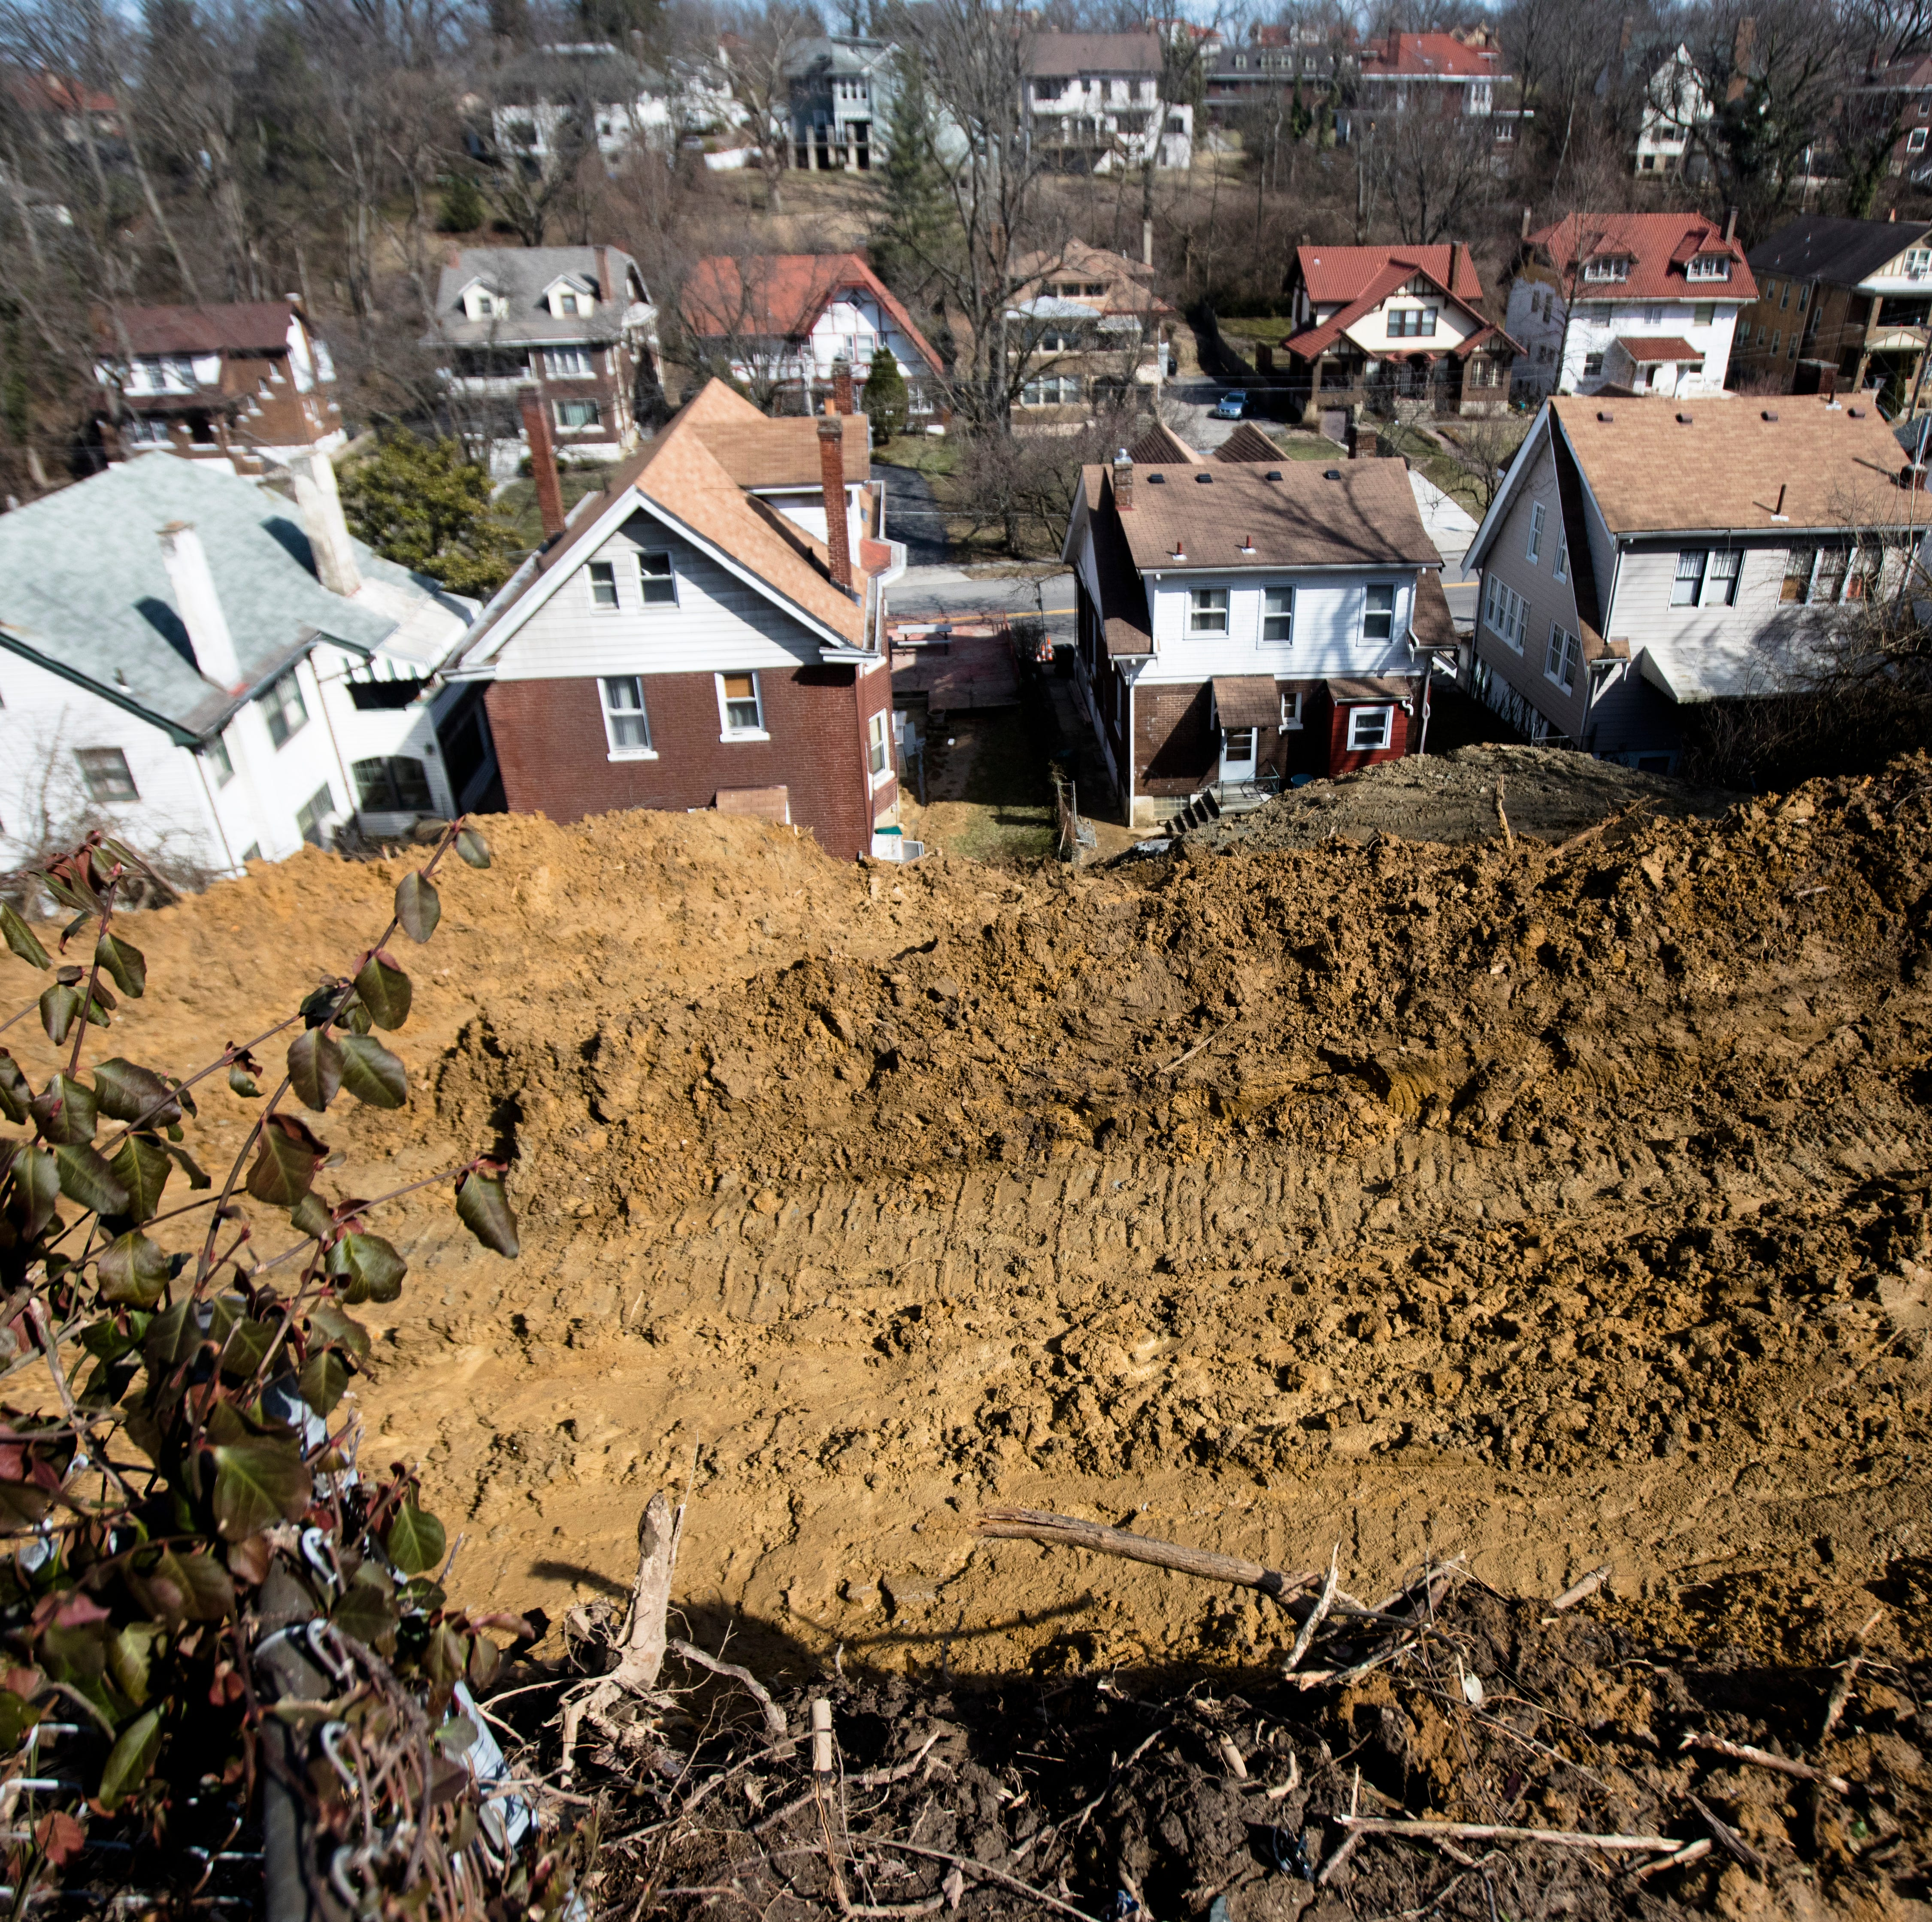 'It's like someone put a bomb in your yard.' Landslides in Greater Cincinnati are bad. And they'll probably get worse.